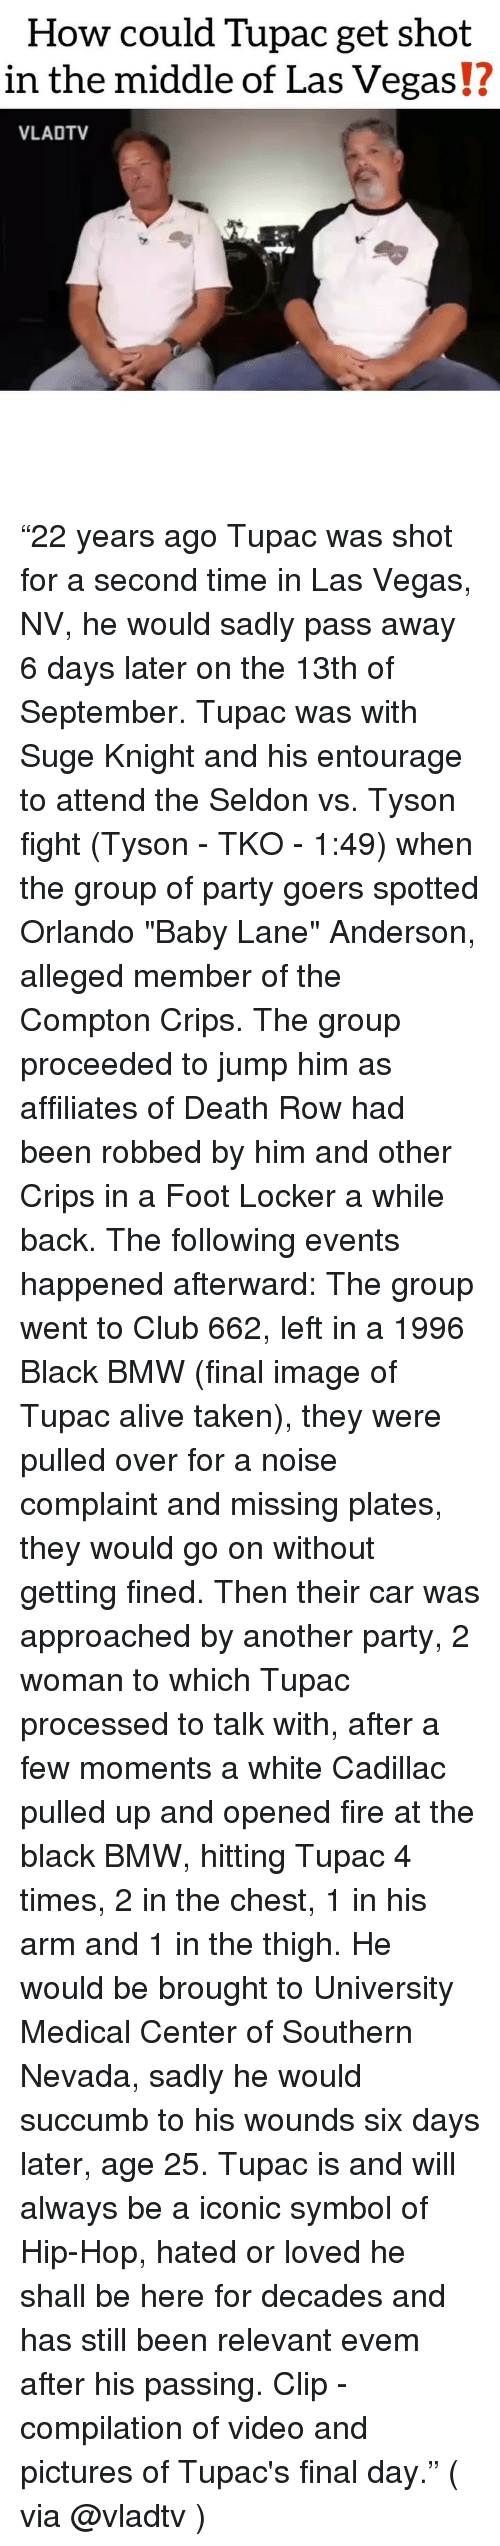 "Alive, Bmw, and Club: How could Tupac get shot  in the middle of Las Vegas!?  VLADTV ""22 years ago Tupac was shot for a second time in Las Vegas, NV, he would sadly pass away 6 days later on the 13th of September. Tupac was with Suge Knight and his entourage to attend the Seldon vs. Tyson fight (Tyson - TKO - 1:49) when the group of party goers spotted Orlando ""Baby Lane"" Anderson, alleged member of the Compton Crips. The group proceeded to jump him as affiliates of Death Row had been robbed by him and other Crips in a Foot Locker a while back. The following events happened afterward: The group went to Club 662, left in a 1996 Black BMW (final image of Tupac alive taken), they were pulled over for a noise complaint and missing plates, they would go on without getting fined. Then their car was approached by another party, 2 woman to which Tupac processed to talk with, after a few moments a white Cadillac pulled up and opened fire at the black BMW, hitting Tupac 4 times, 2 in the chest, 1 in his arm and 1 in the thigh. He would be brought to University Medical Center of Southern Nevada, sadly he would succumb to his wounds six days later, age 25. Tupac is and will always be a iconic symbol of Hip-Hop, hated or loved he shall be here for decades and has still been relevant evem after his passing. Clip - compilation of video and pictures of Tupac's final day."" ( via @vladtv )"